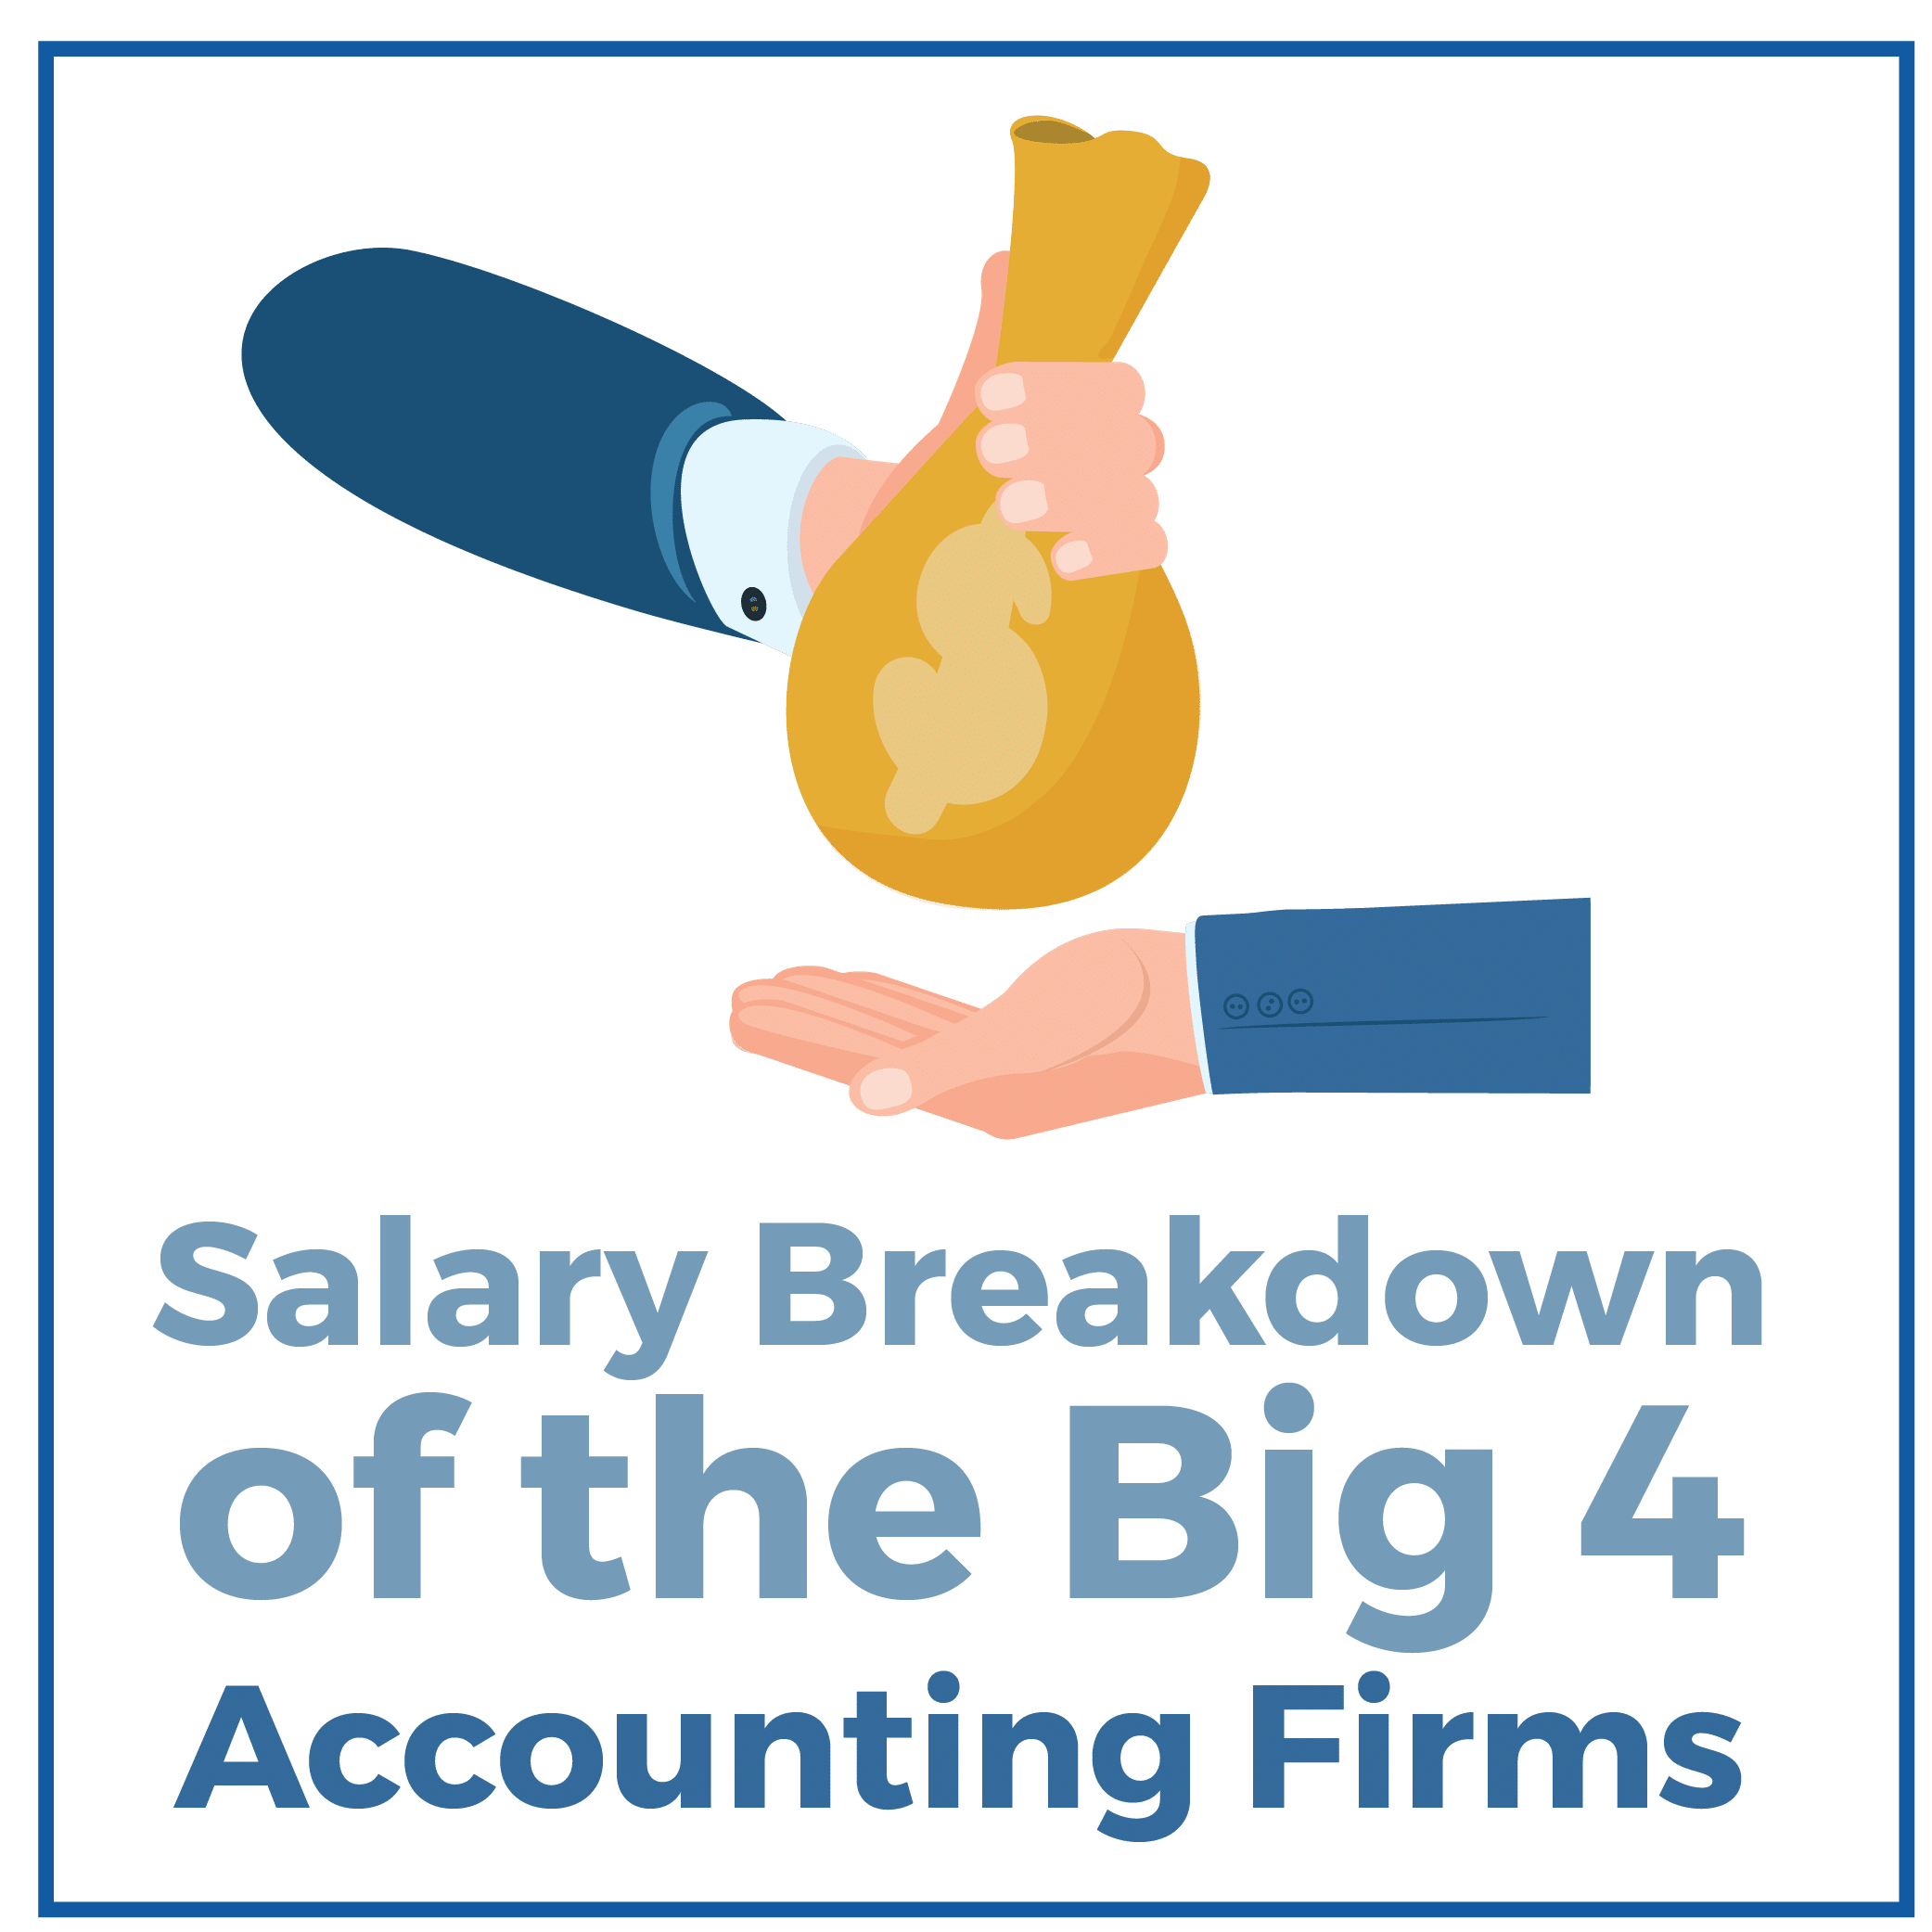 Salary Breakdown of the Big 4 Accounting Firms